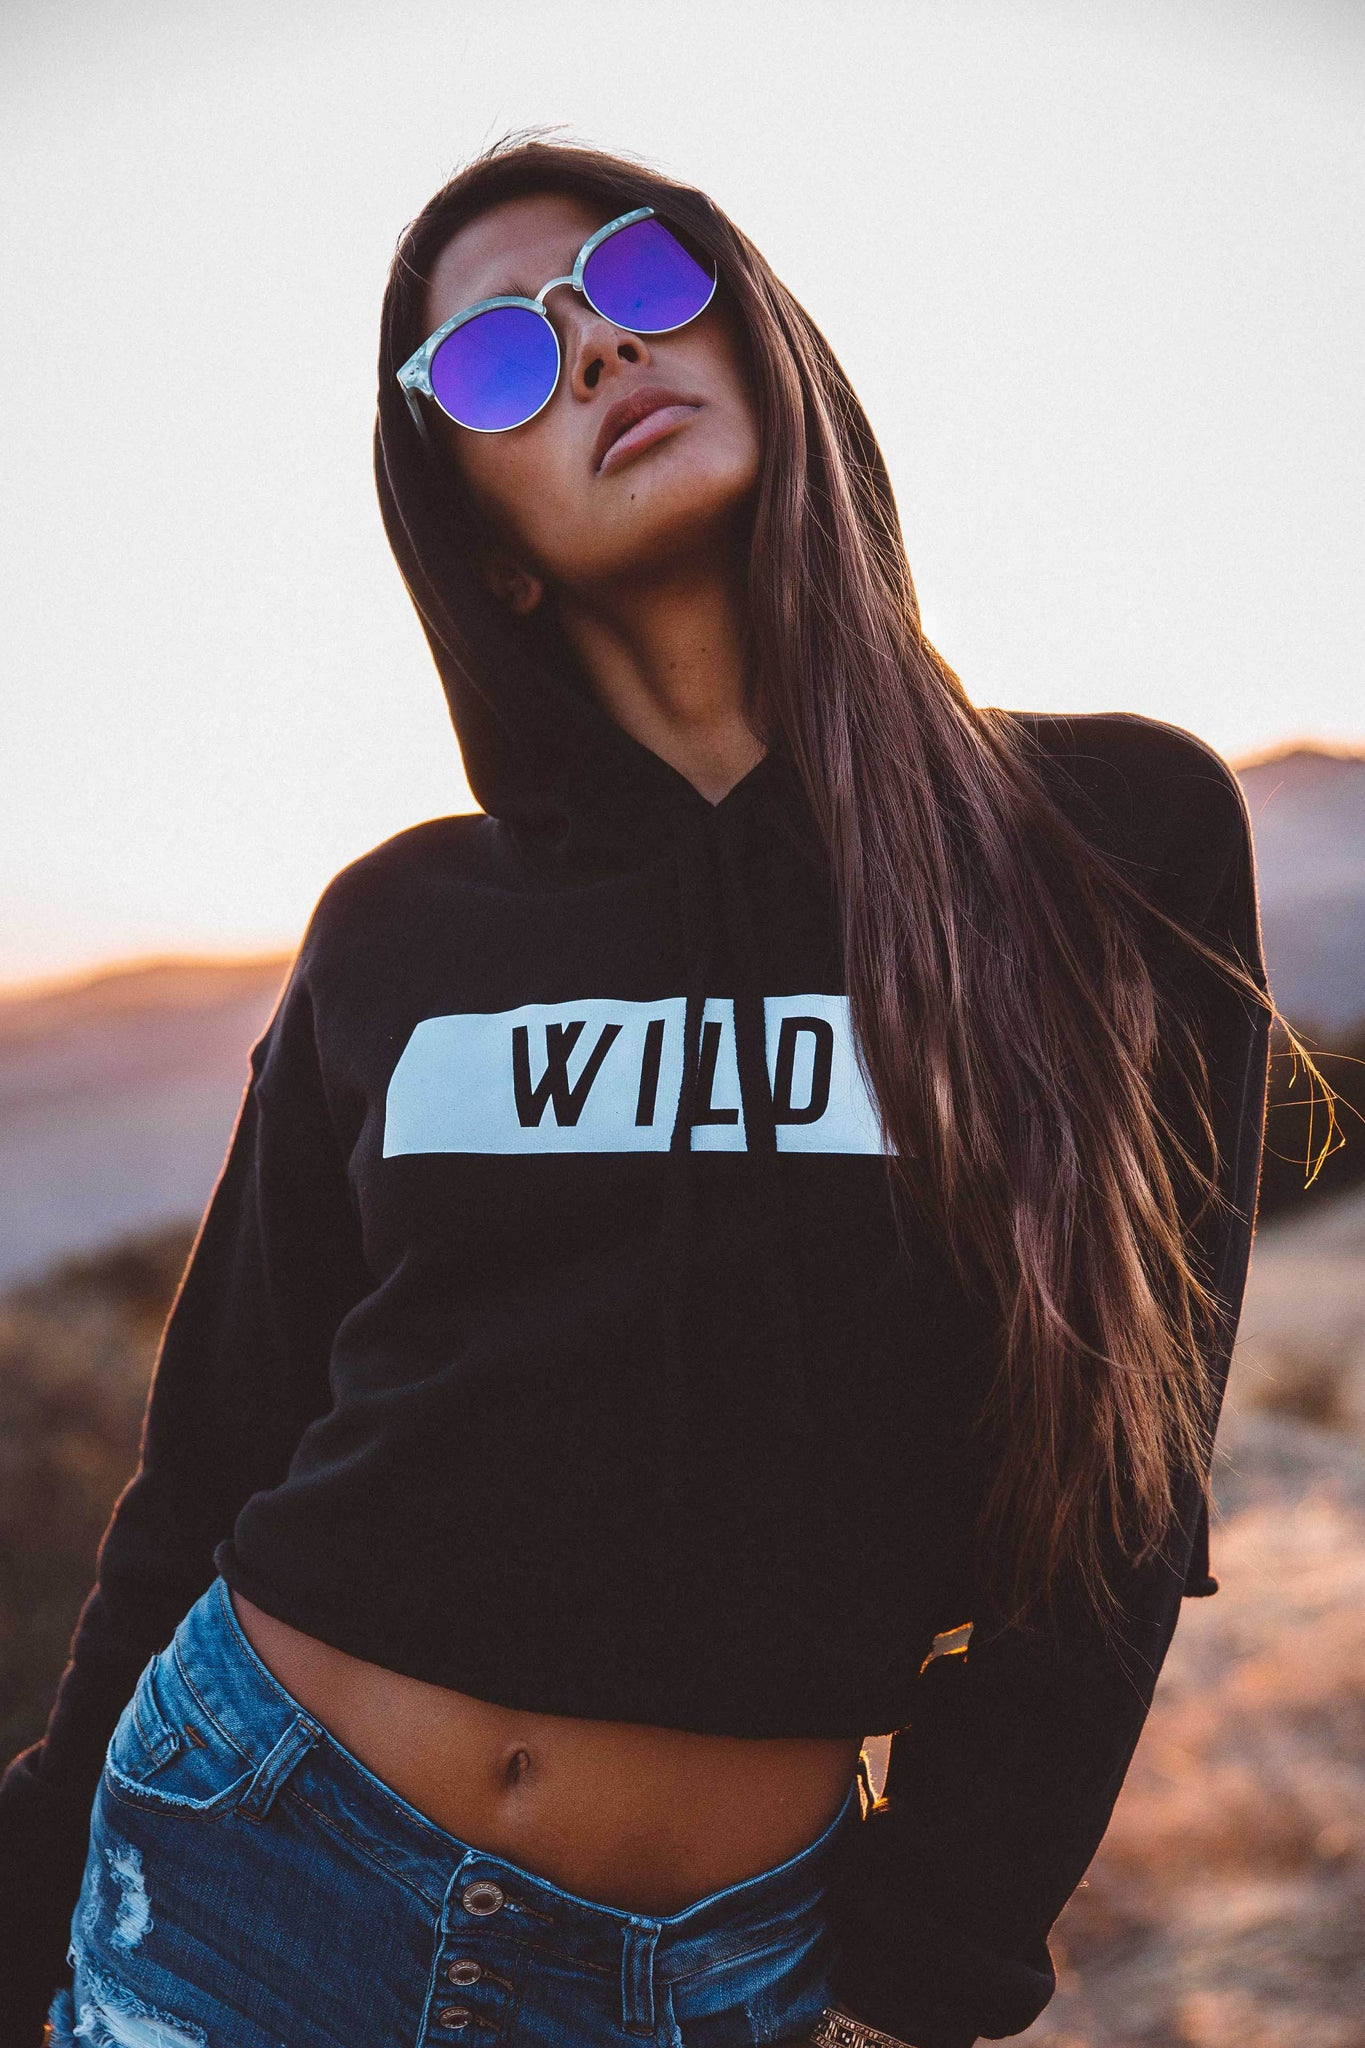 The Parks WILD Cropped Hoodie - The Parks Apparel